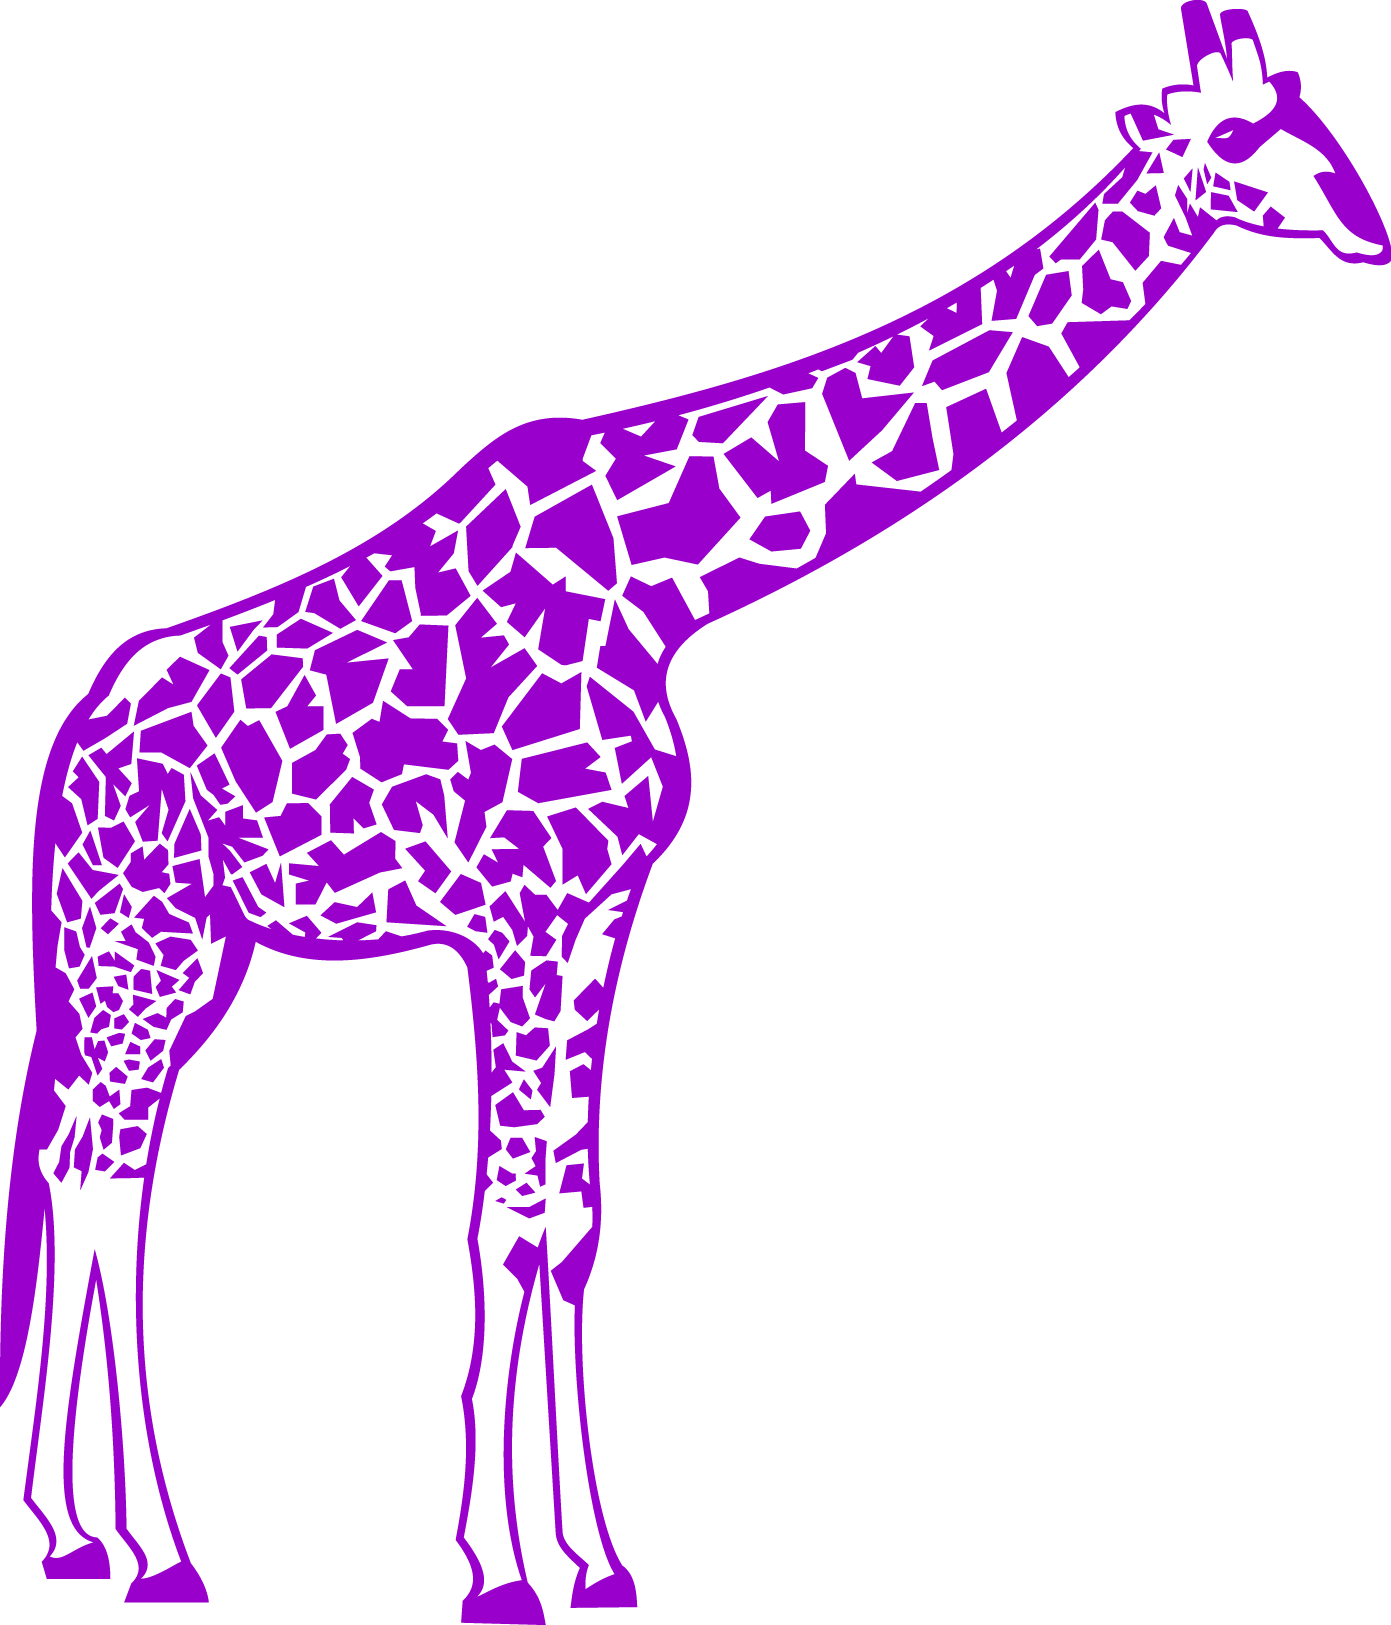 Purple Giraffe Designs